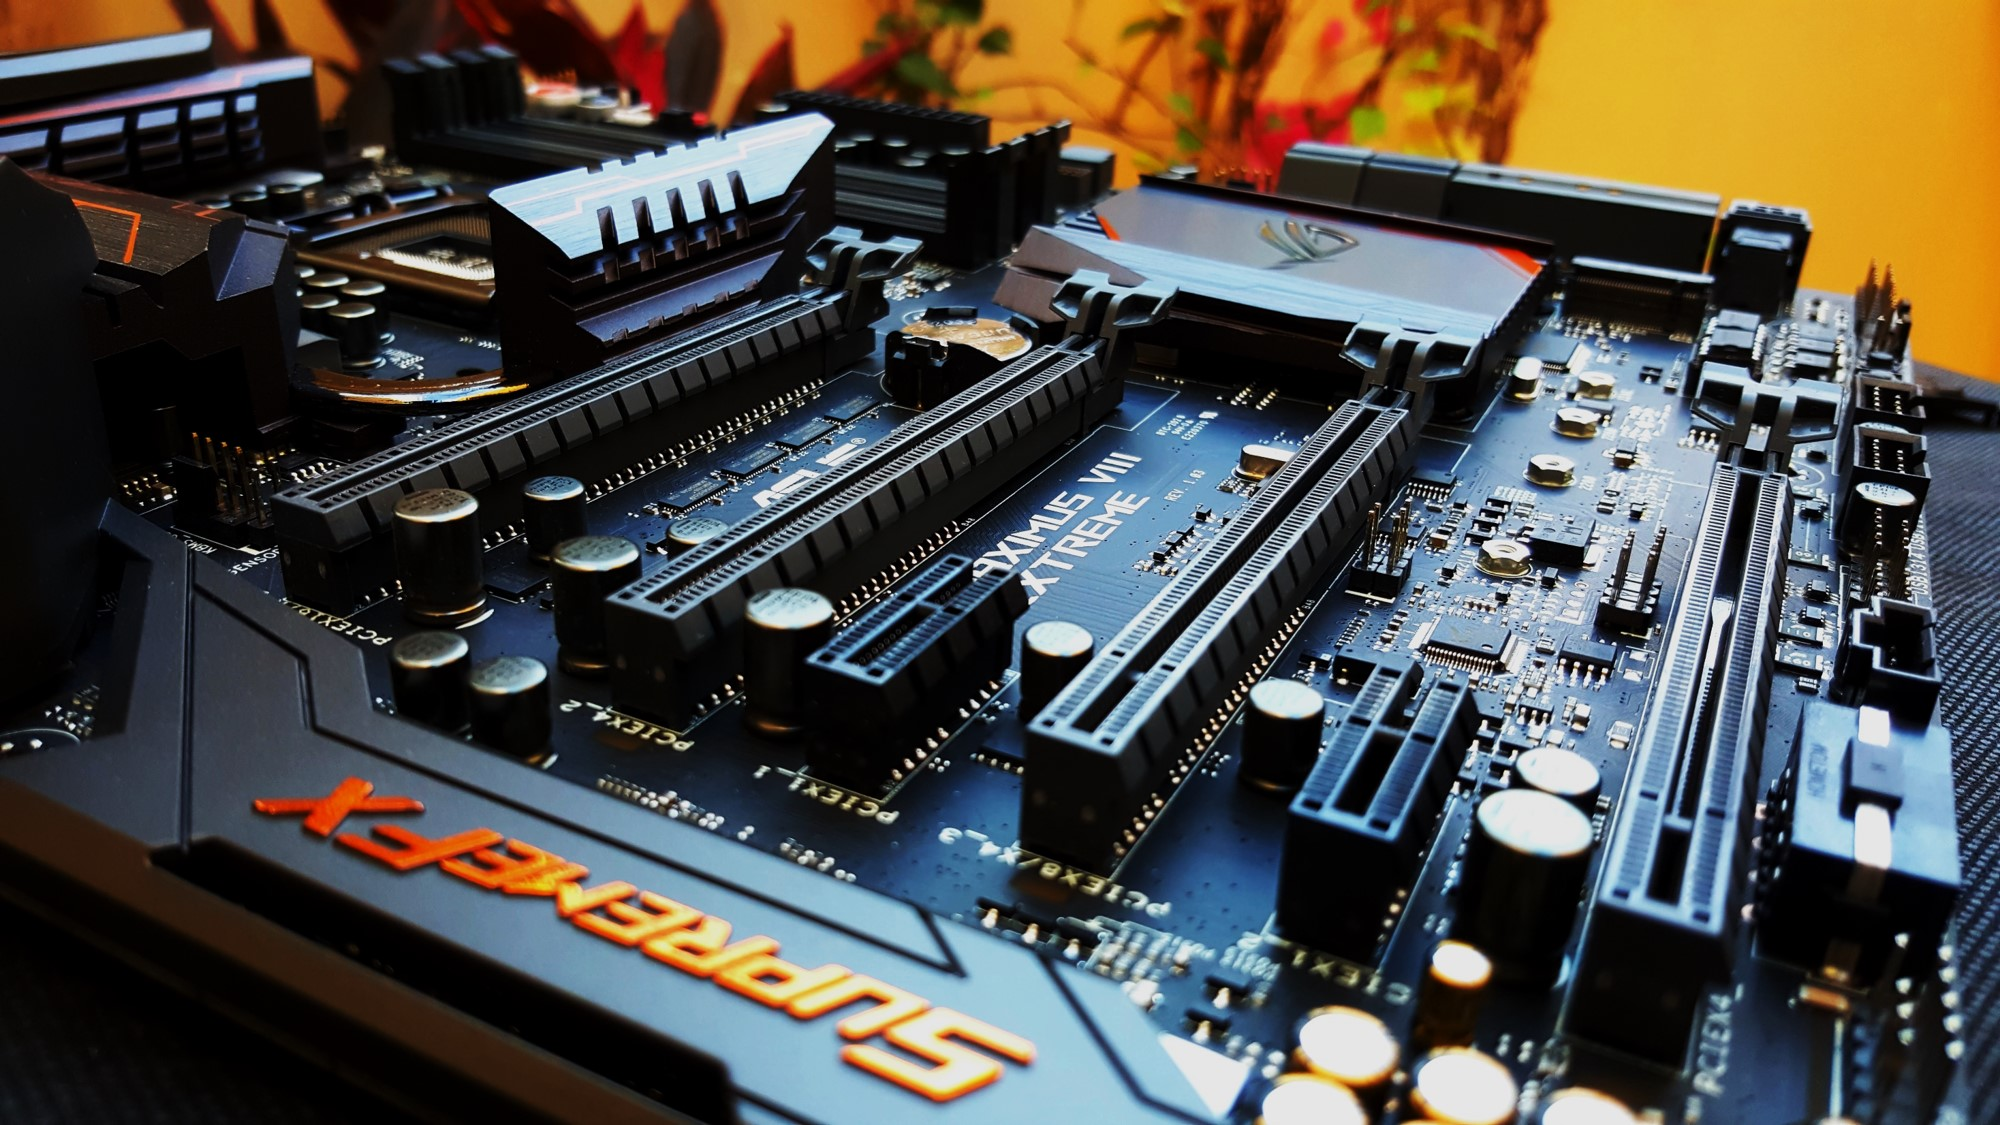 21-Asus Z170 Maximus VIII Extreme Assembly